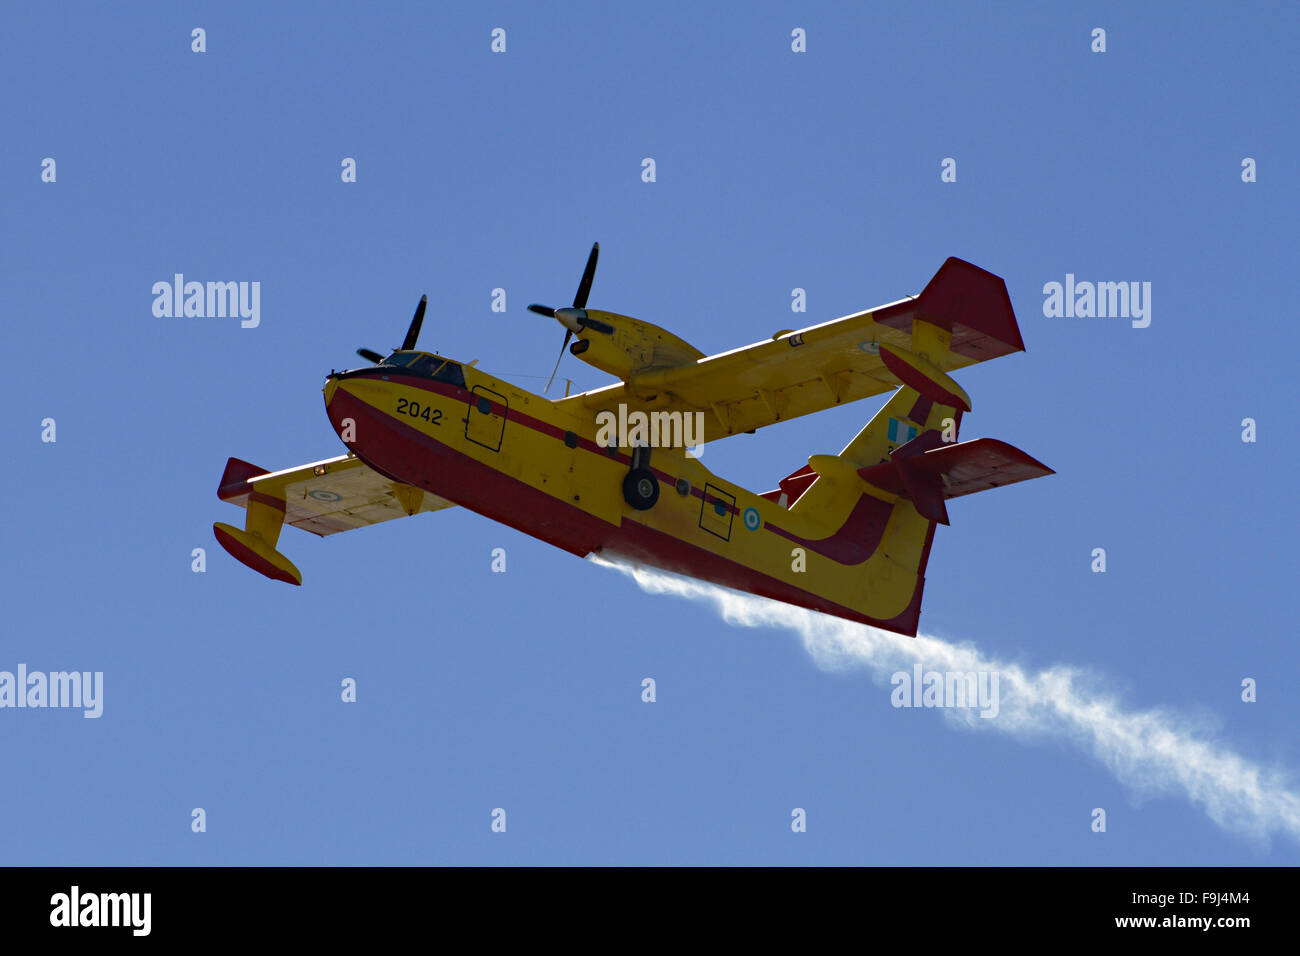 Extinguishing Aircarfts - Fire on Rhodos - Greece - Stock Image